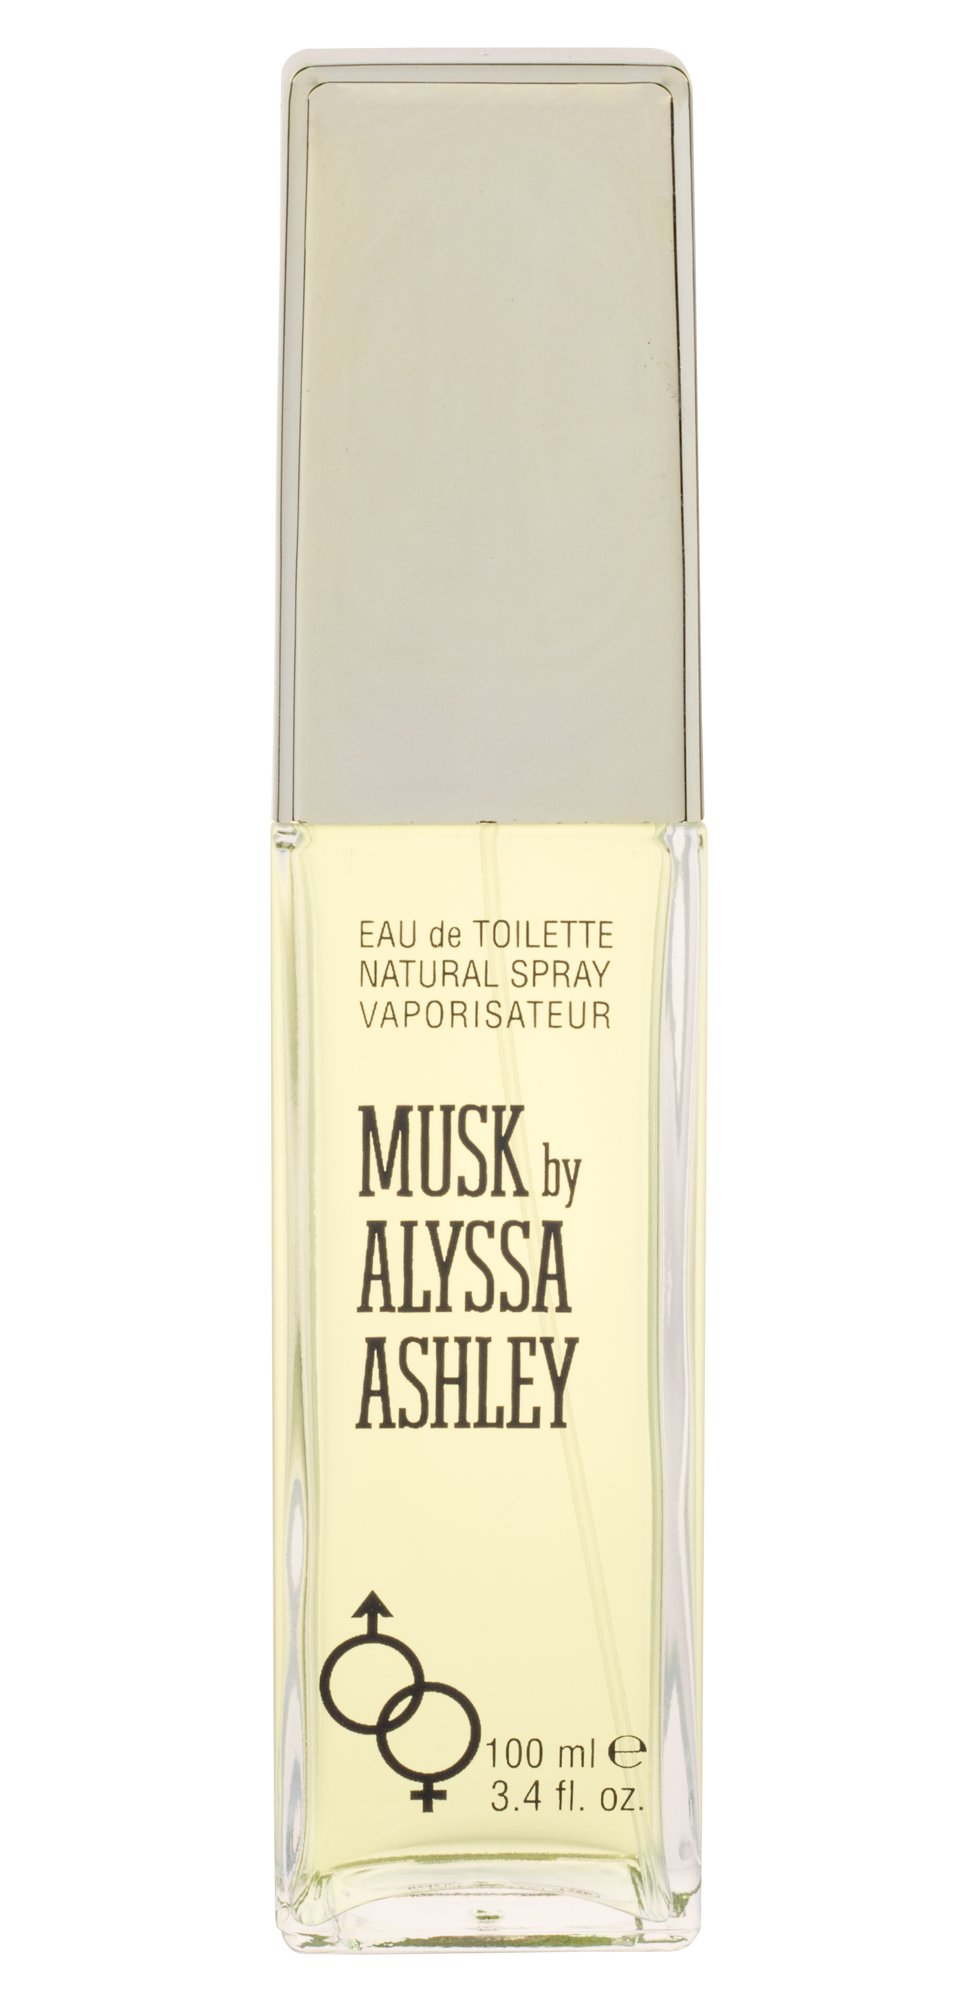 Alyssa Ashley Musk, edt 100ml